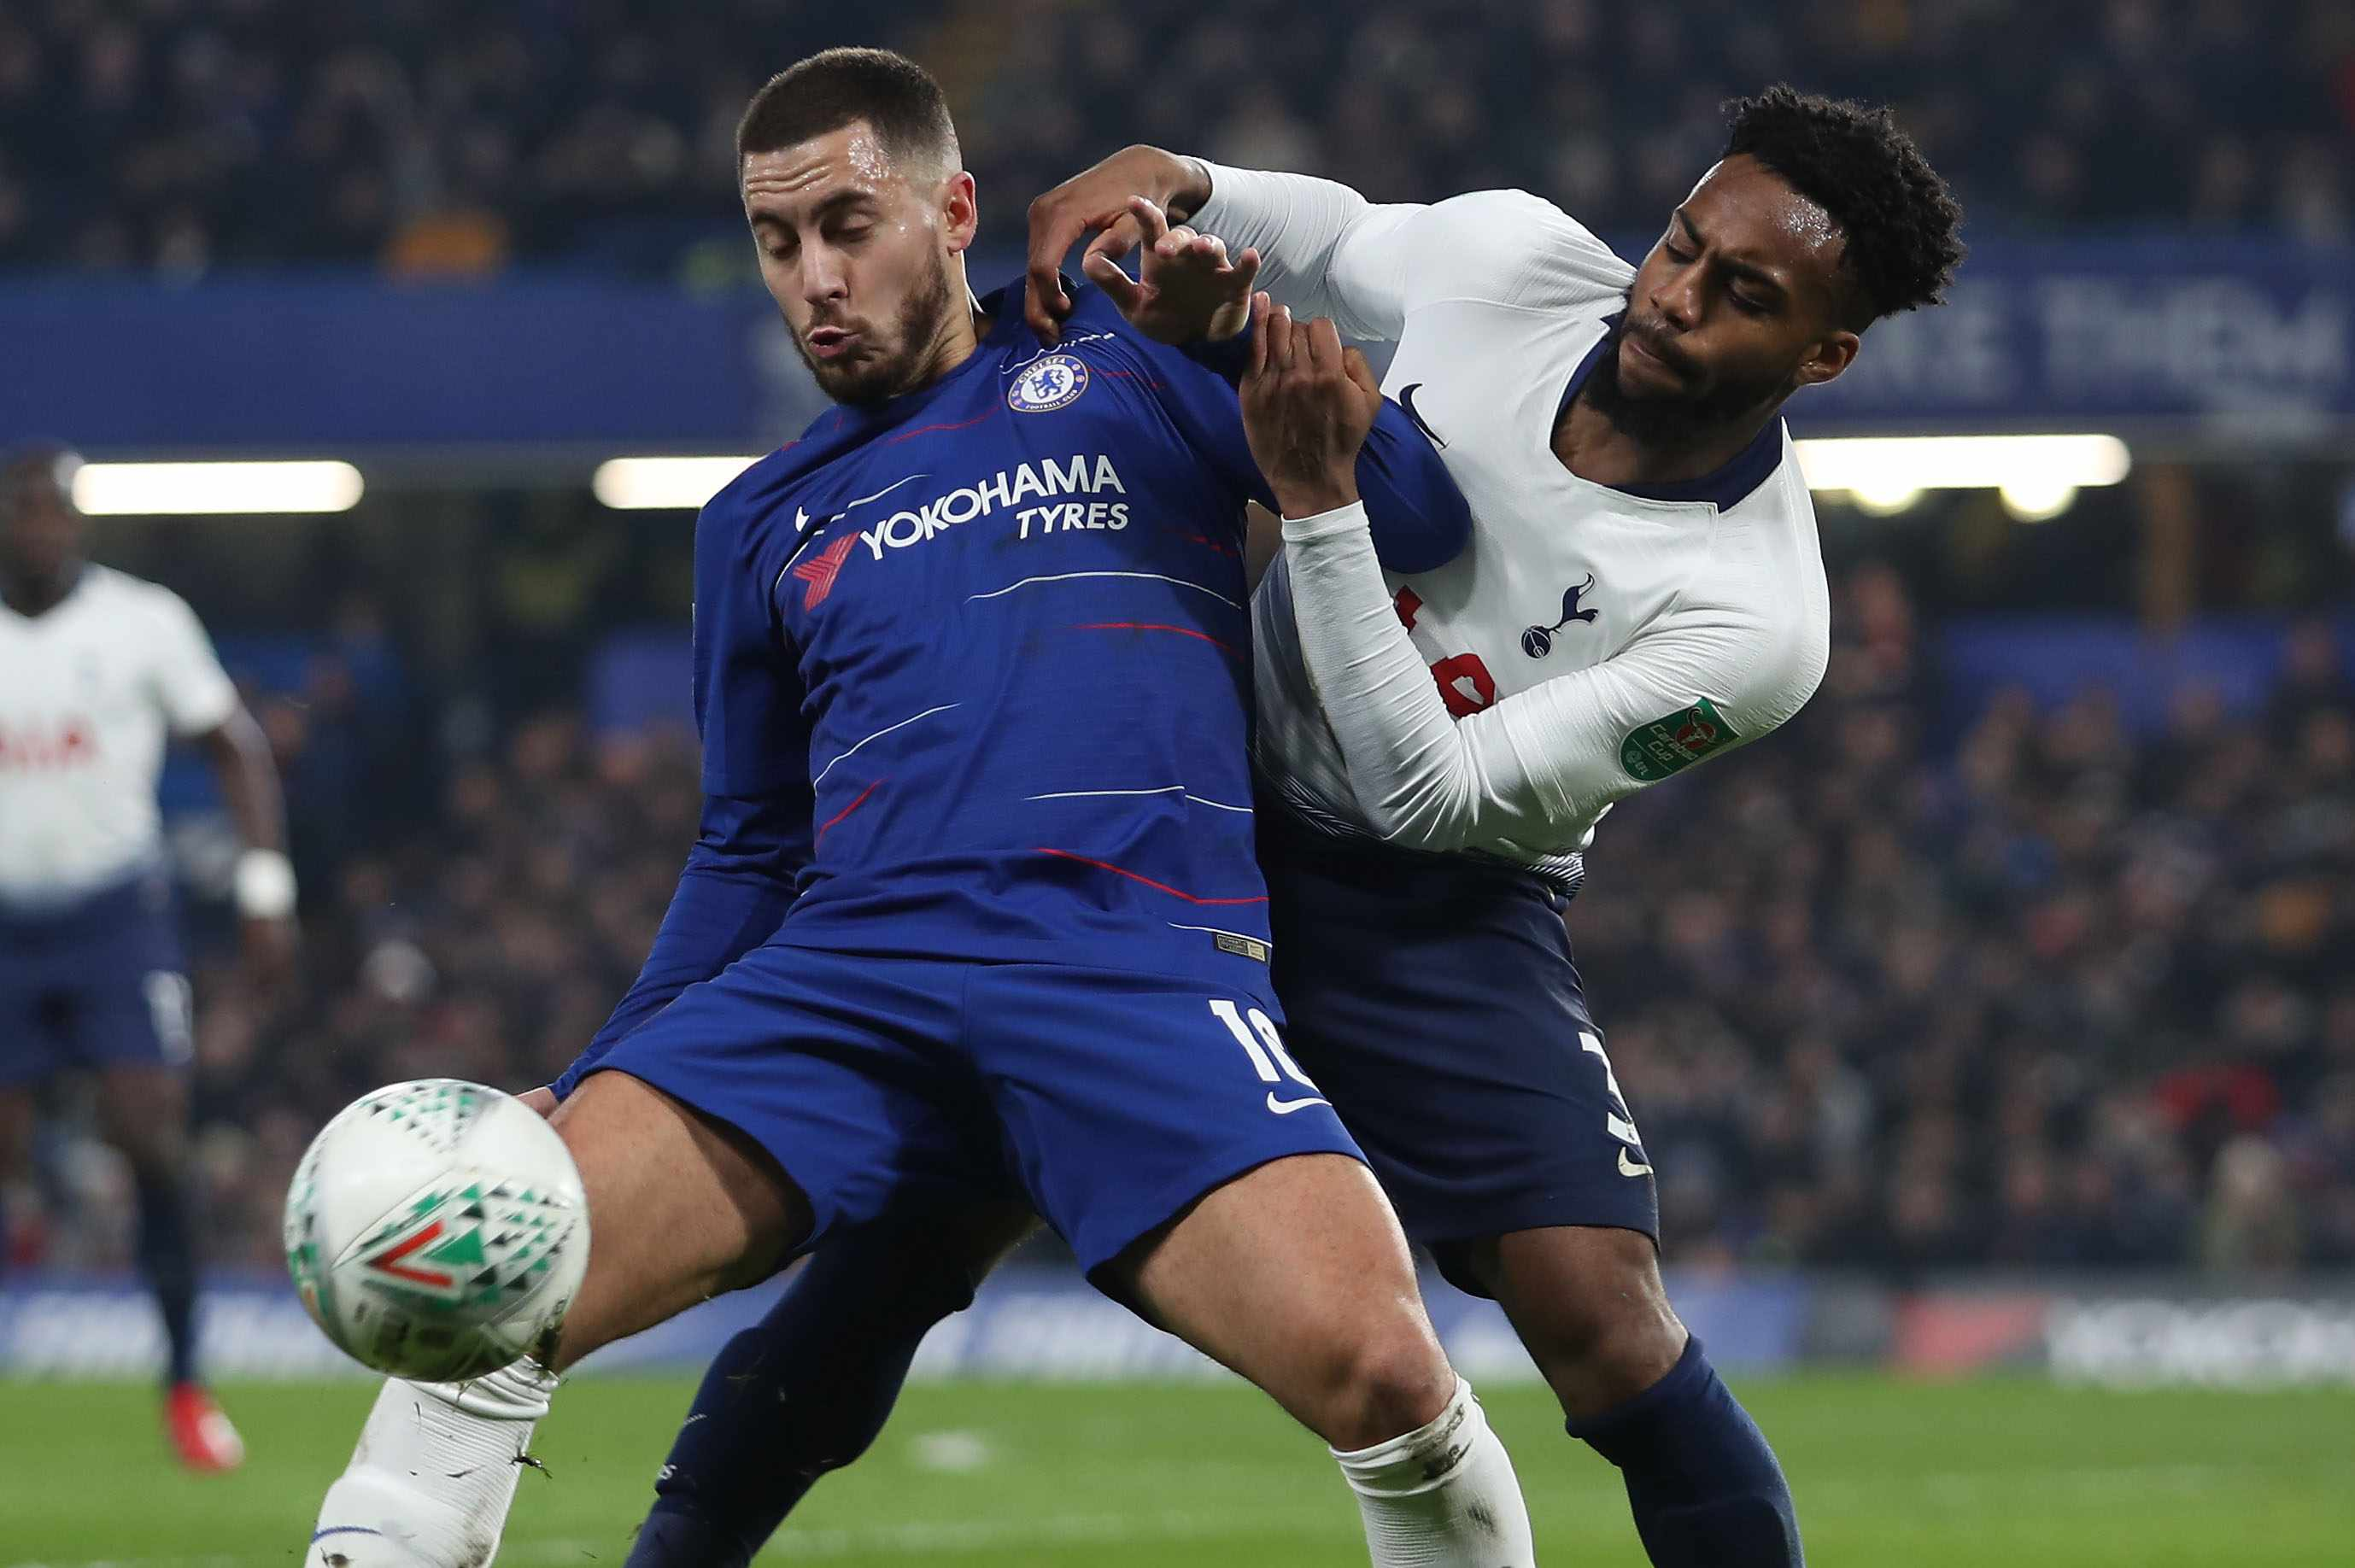 Chelsea v Tottenham: How to watch the Premier League clash on TV and online